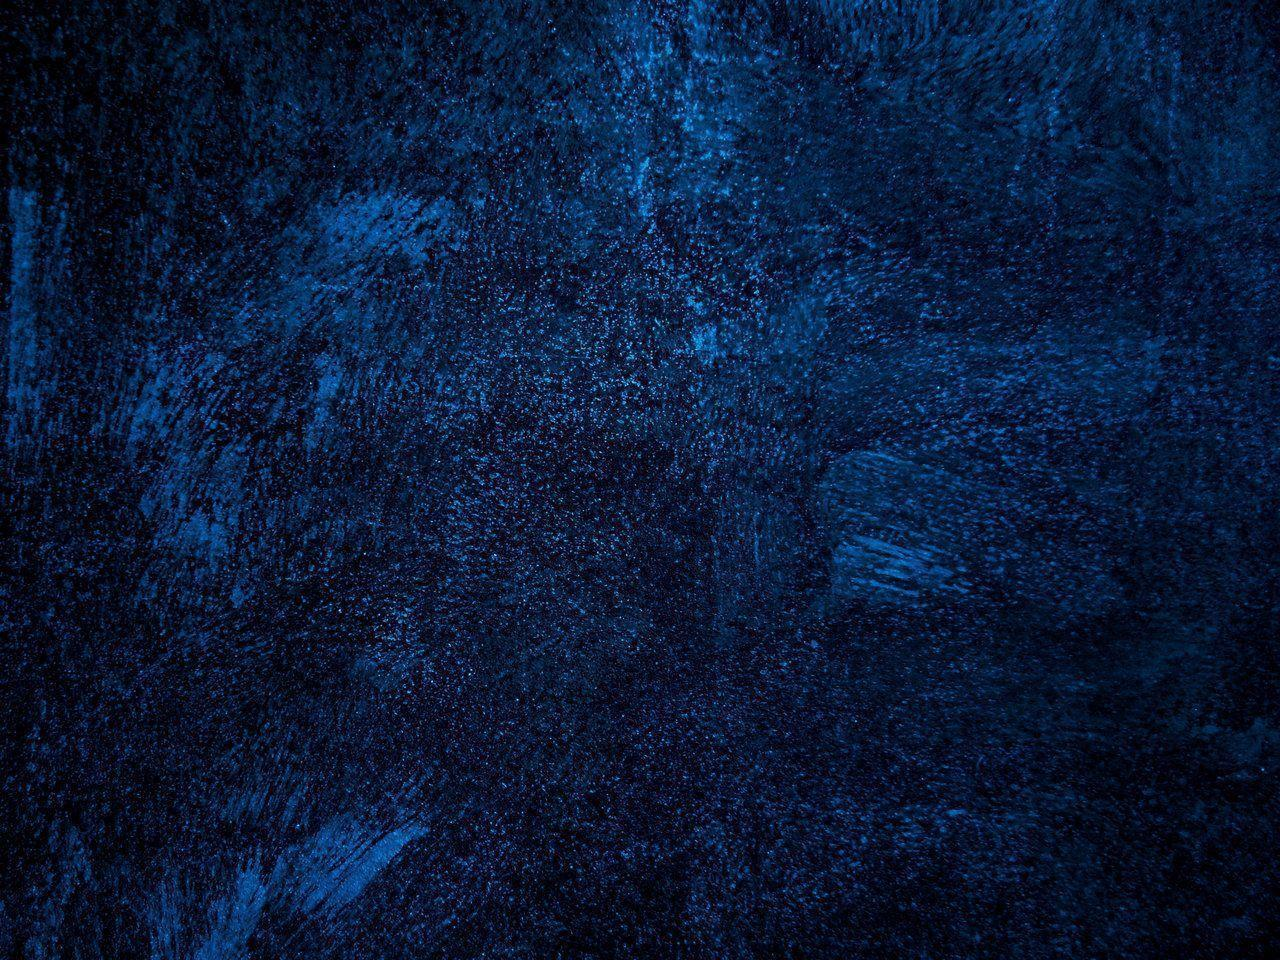 Images For > Dark Blue Textured Backgrounds